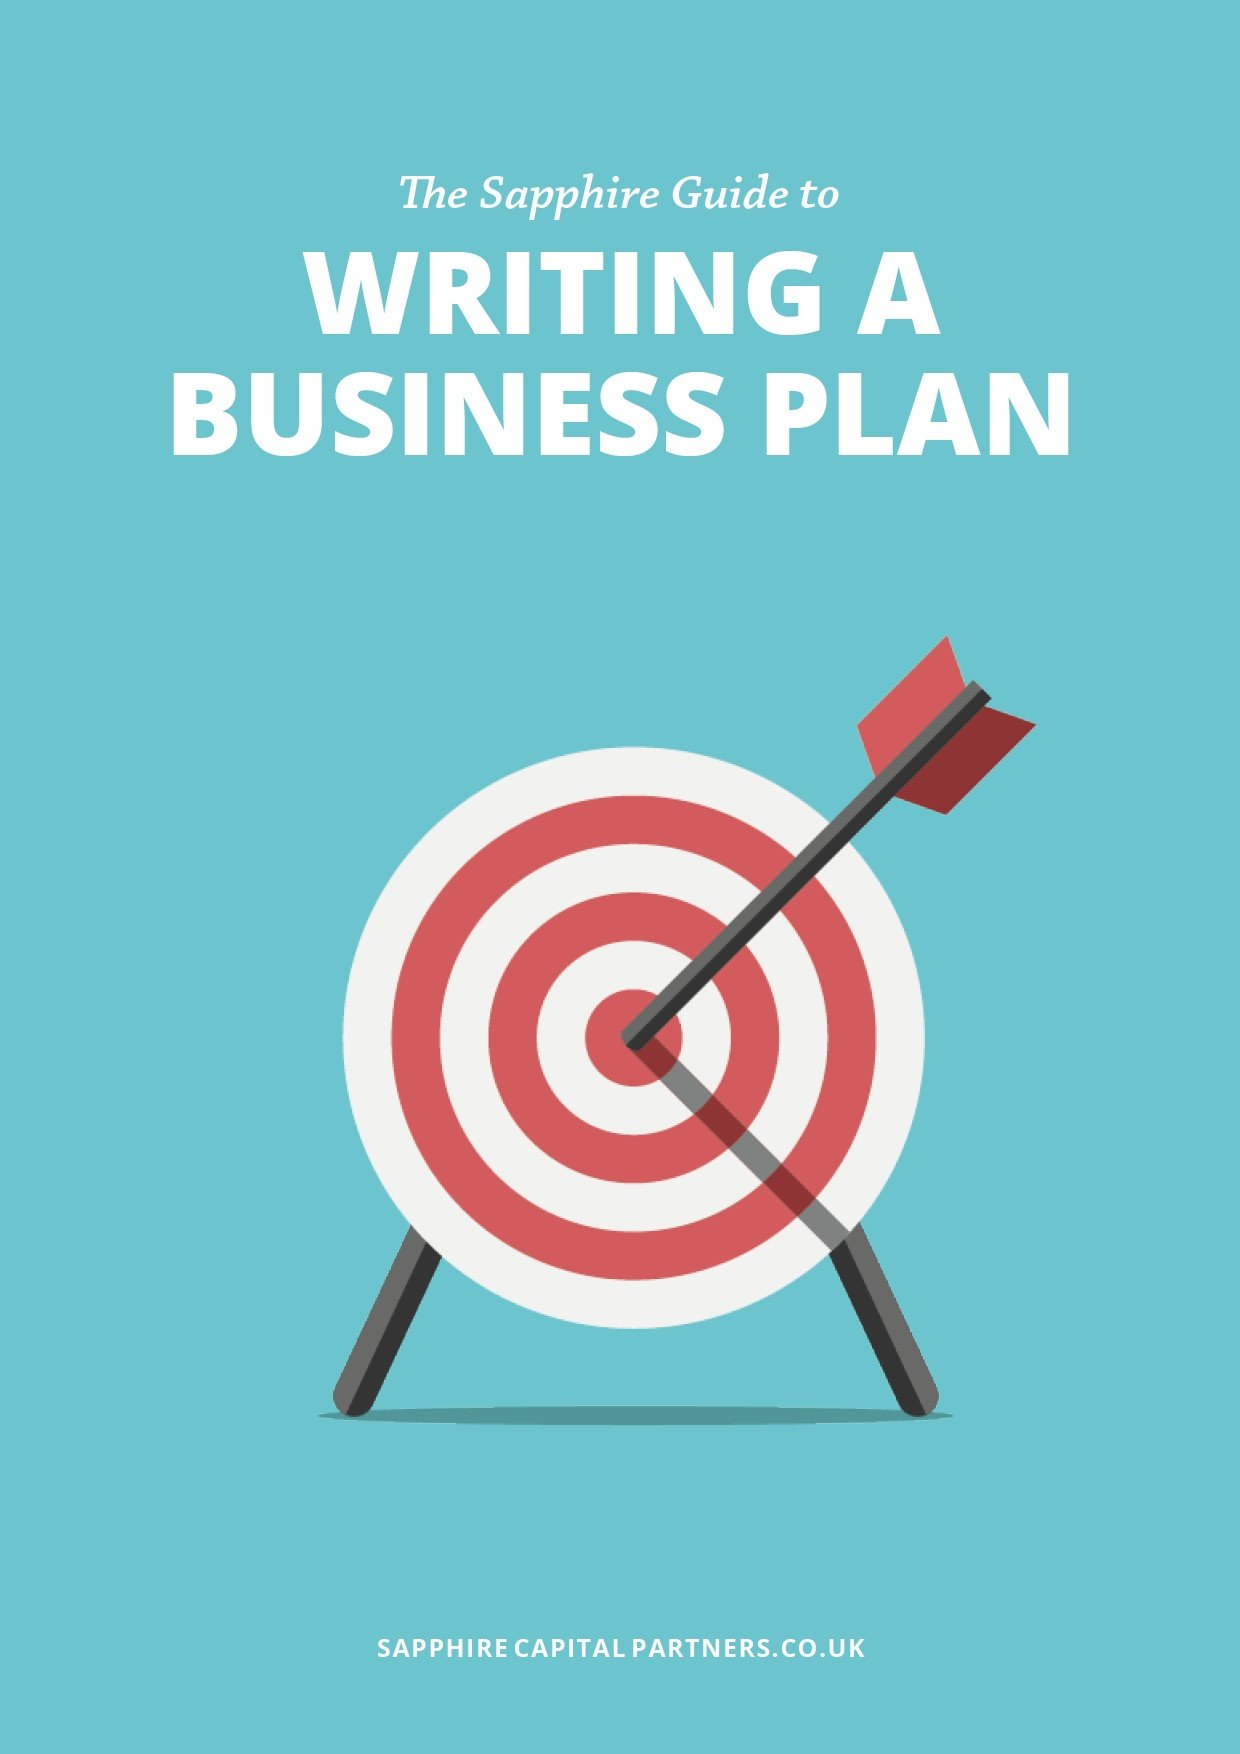 The Sapphire Guide to Writing a Business Plan eBook cover